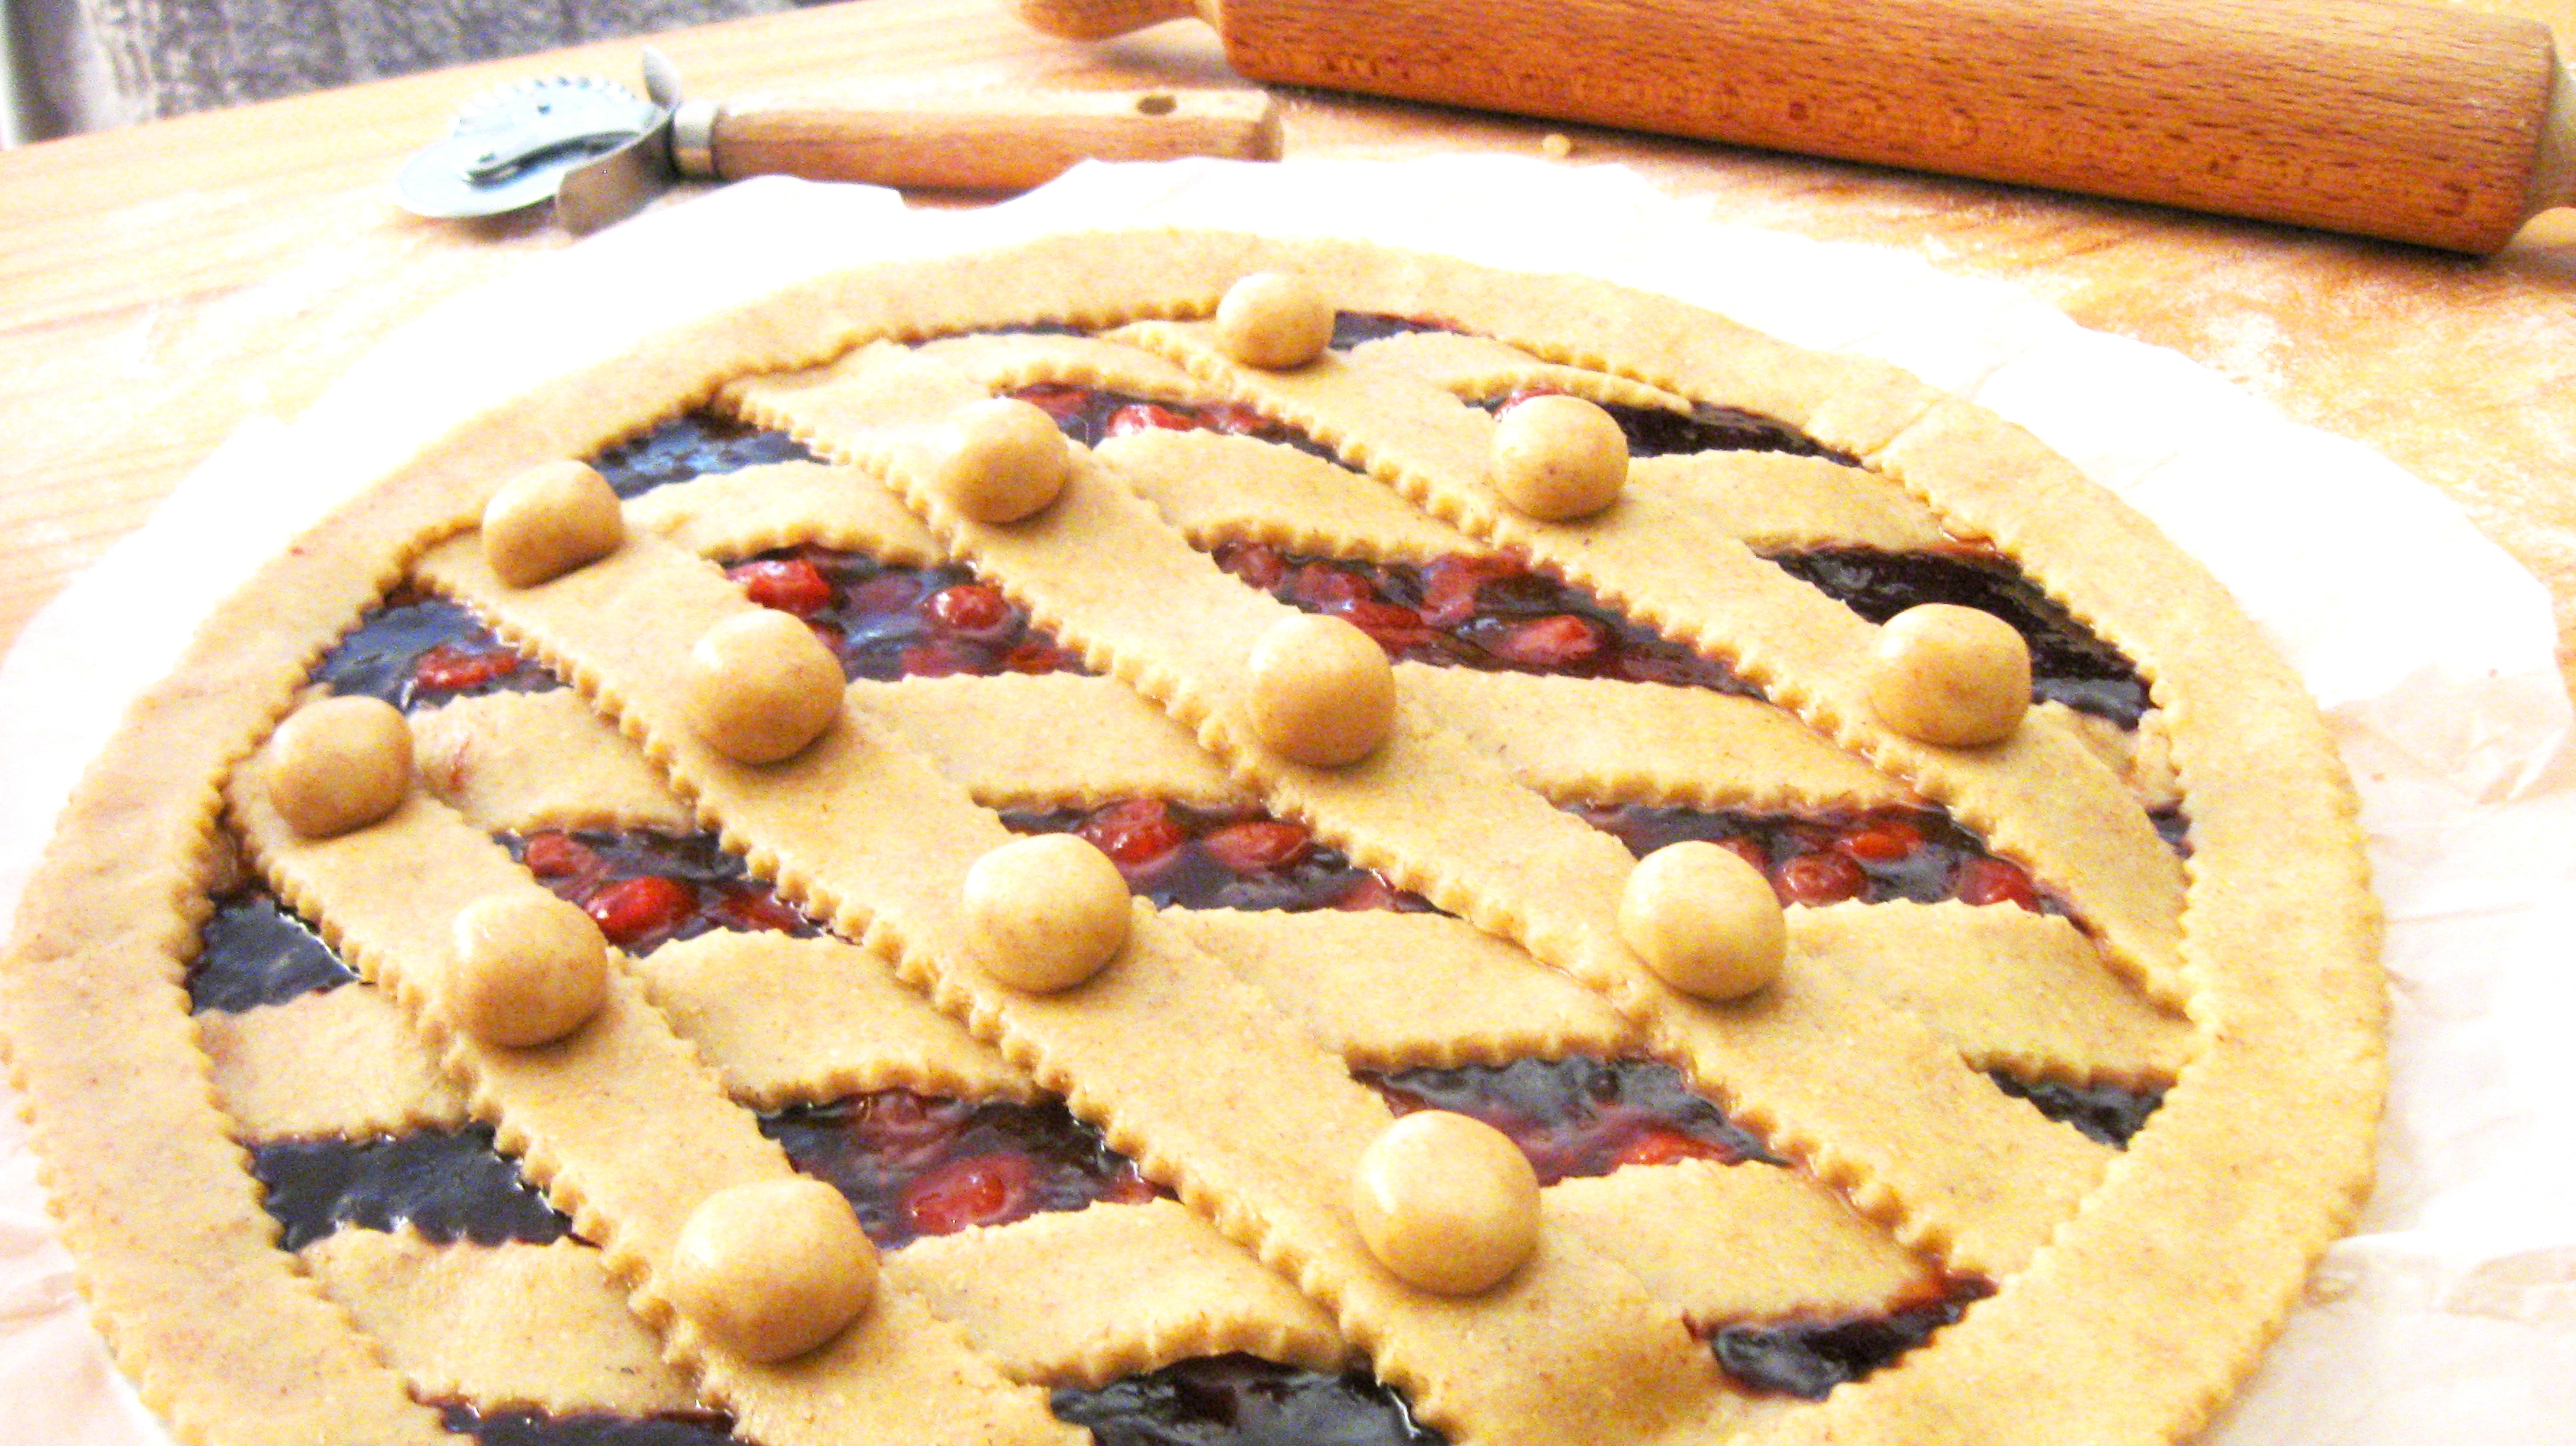 Crostata integrale con marmellata homemade di amarene e top di fragoline in sciroppo homemade